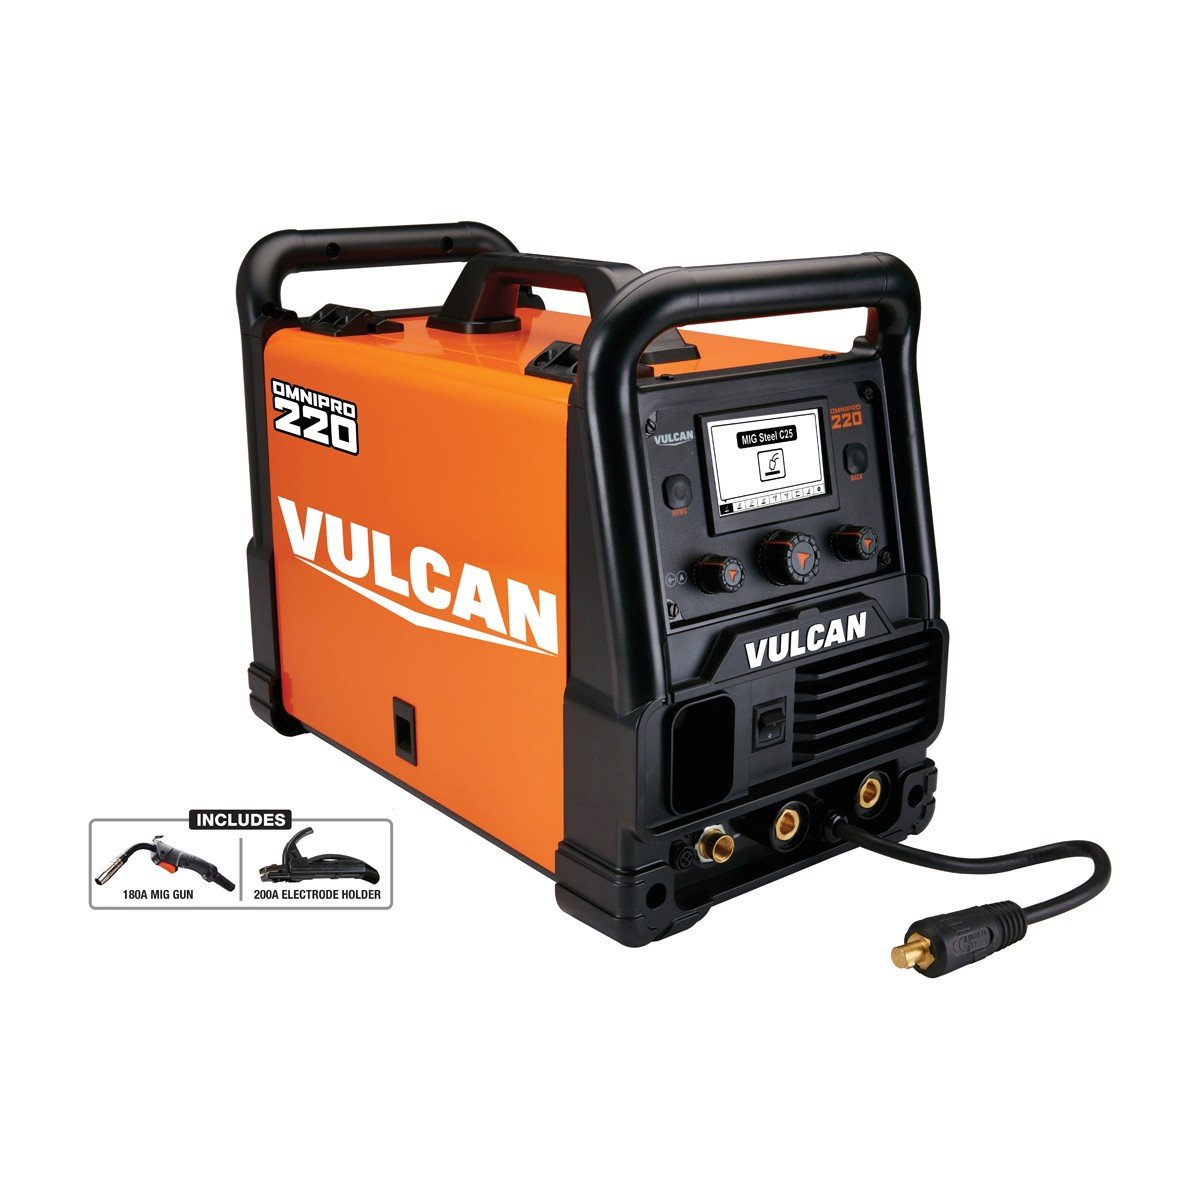 Vulcan OmniPro 220 Multiprocess Welder with 120/240 Volt Input Harbor Freight Tools